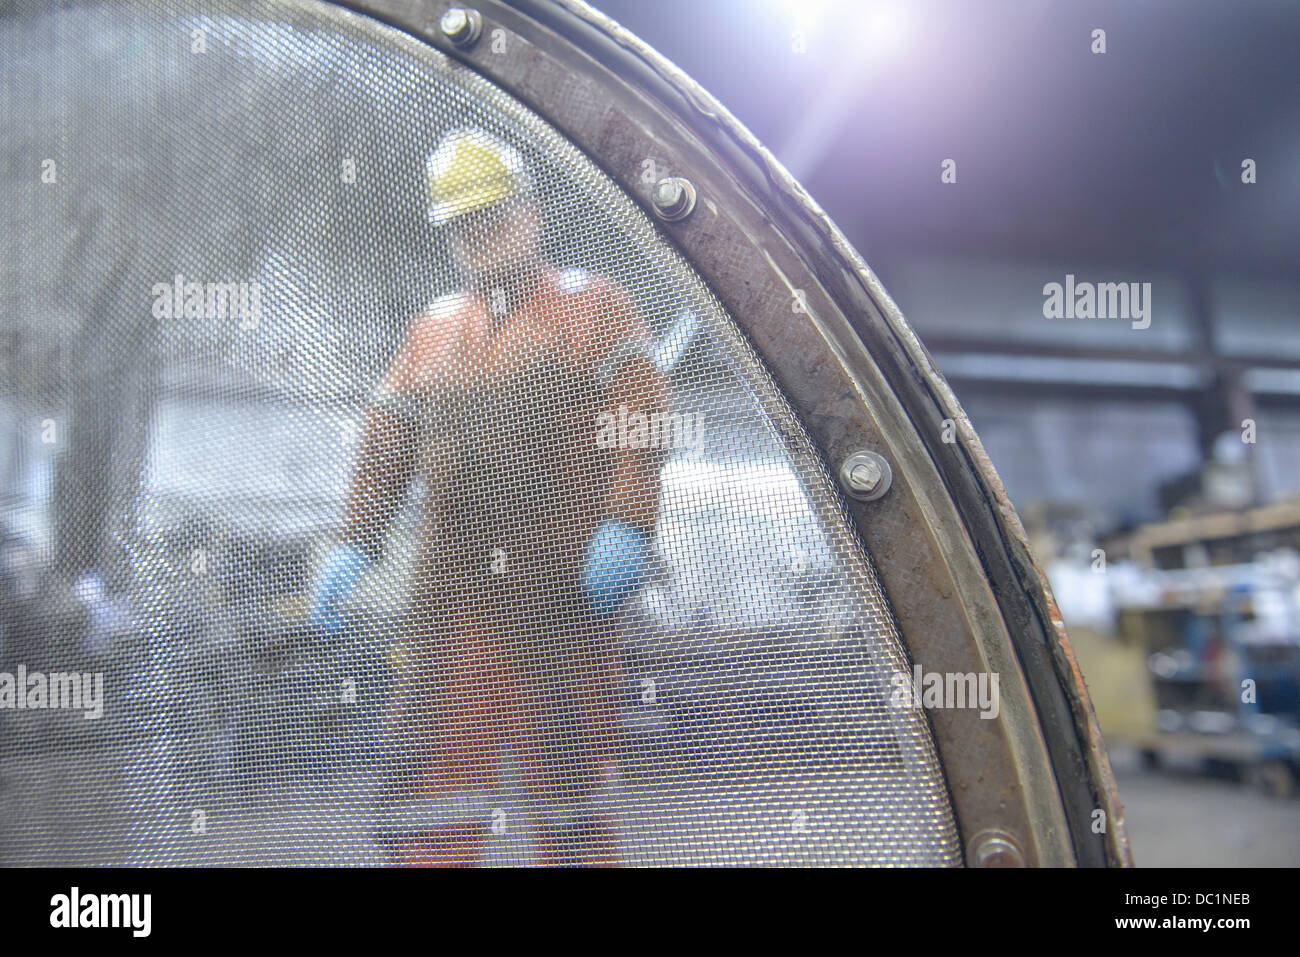 Portrait of worker behind industrial sieve in steel foundry - Stock Image